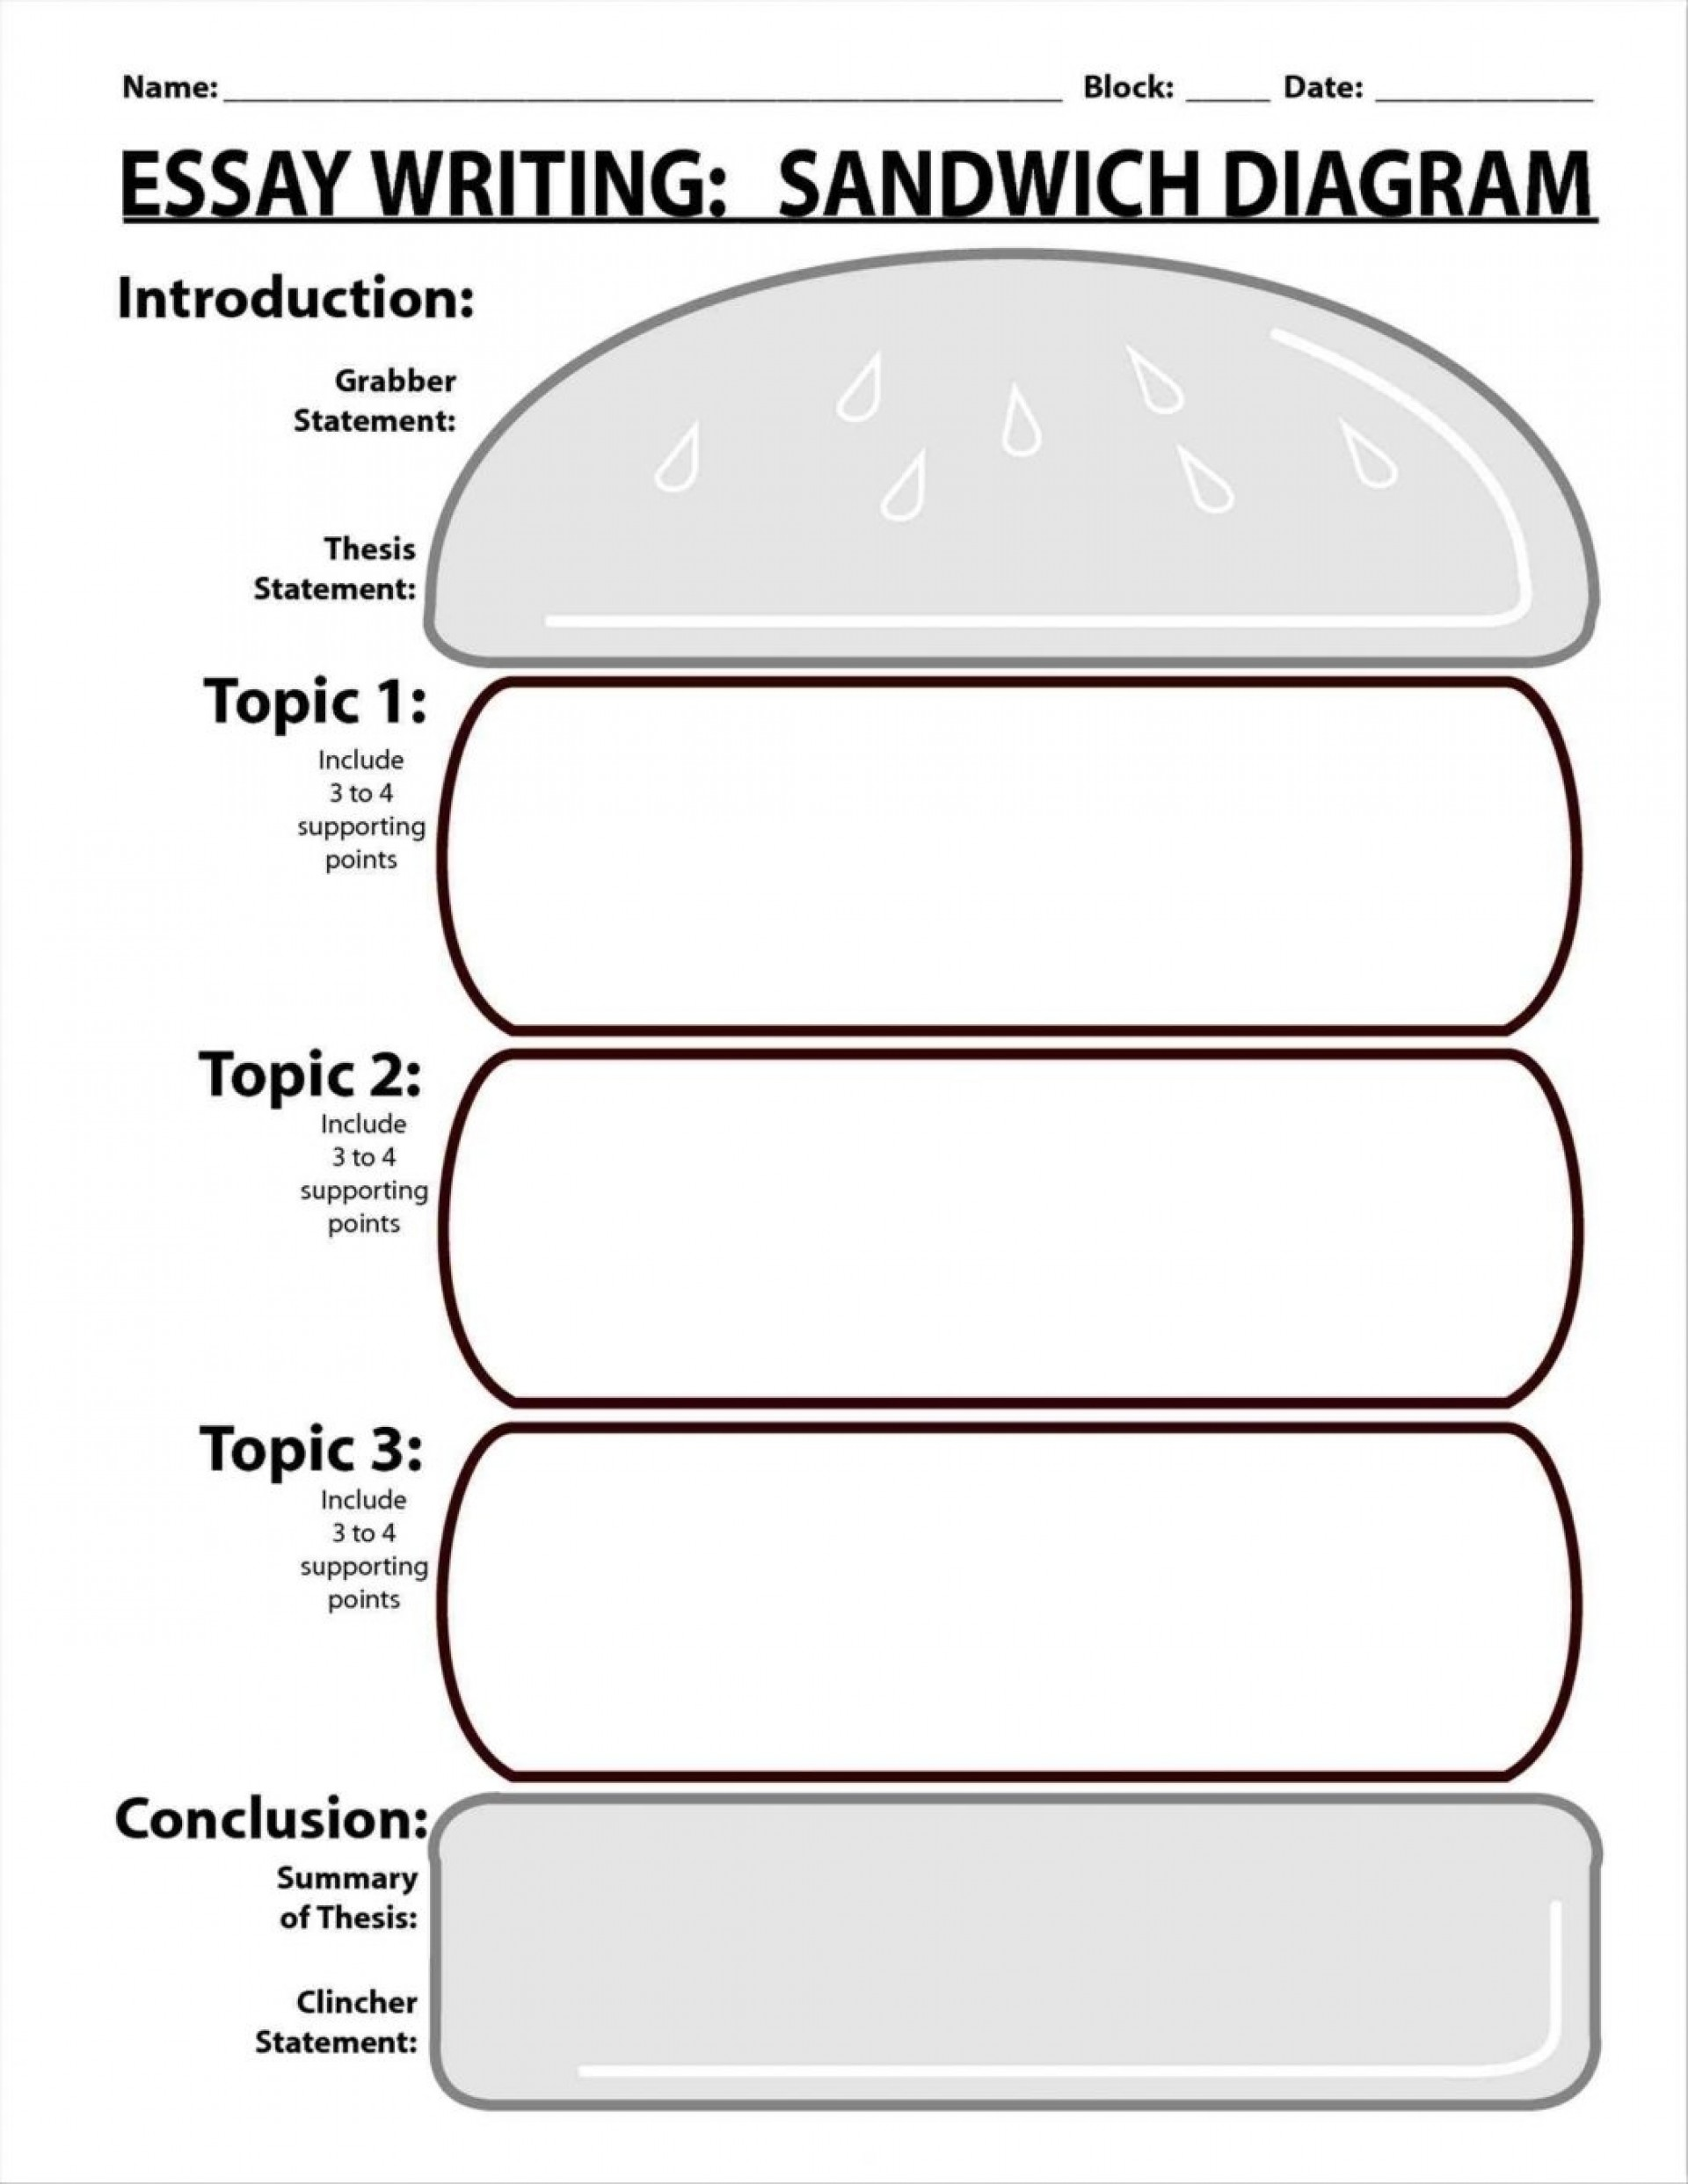 010 Paragraph Essay Graphic Organizer Hamburger Writings And Essays Inside Elementary Example Wonderful Five High School 5 Middle Pdf Organizer-hamburger 1920